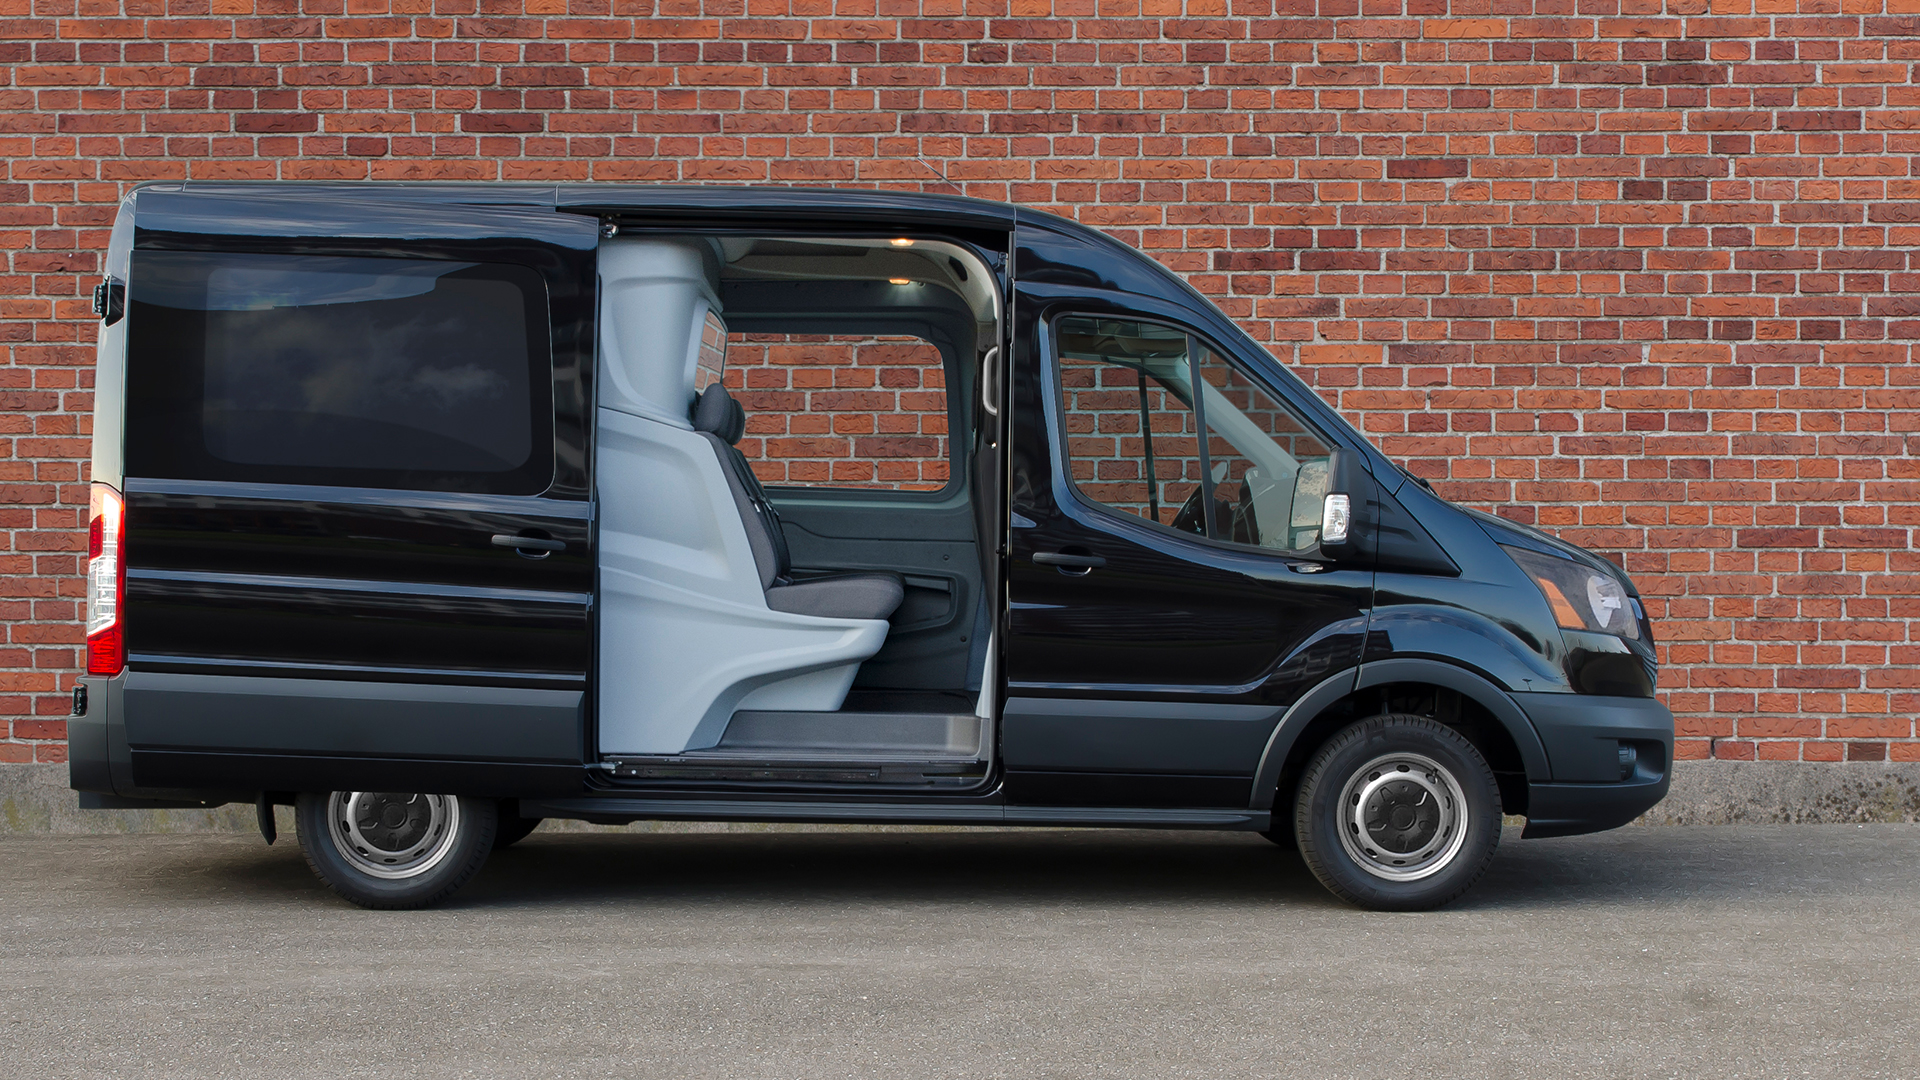 Ford Transit Crew Van by Snoeks Automotive